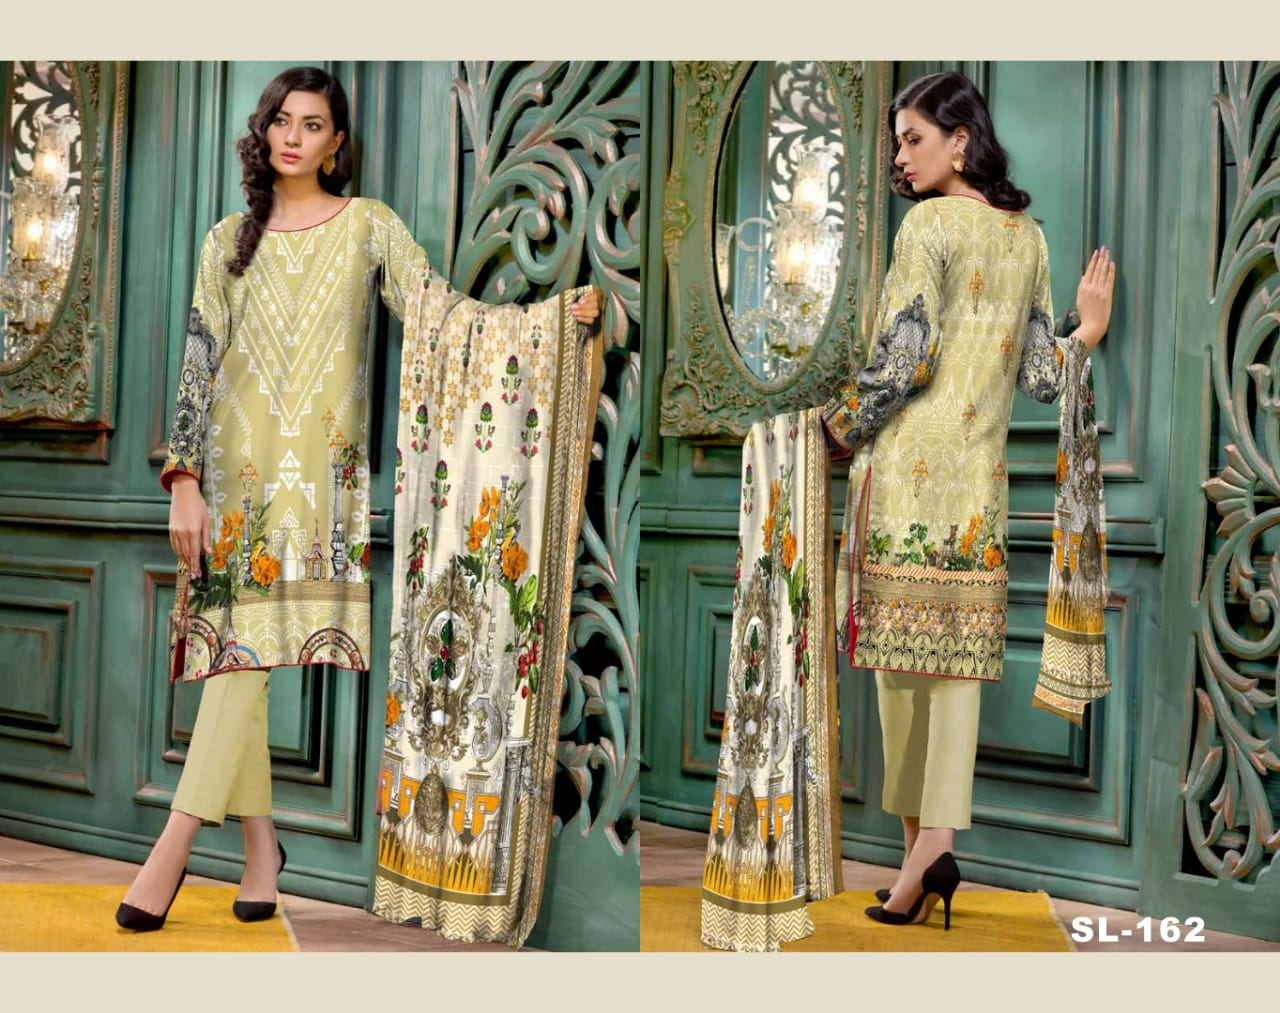 sl-162-safwa-lawn-salvia-collection-printed-2-piece-dress - Two Piece Suit - safwa